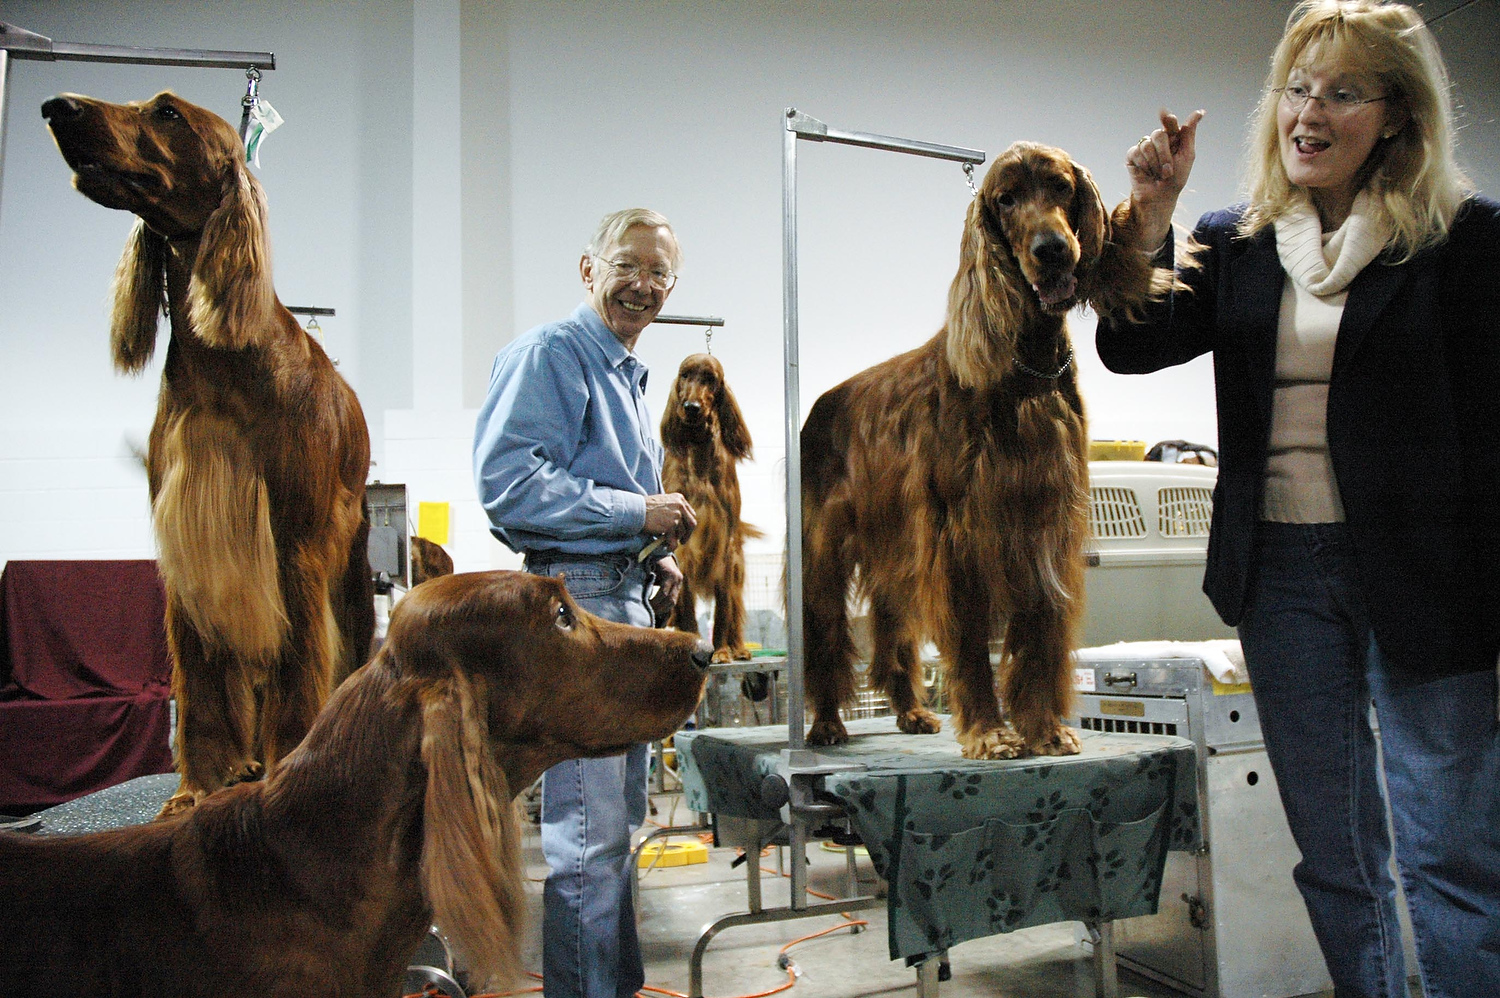 Nancy Fiacco of Bayville, N.J., calls the attention of Champion Fyrethorn Royal Guard {quote}Killian,{quote} foreground, during a break grooming a family of Irish Setters, with breeder Charlie Sloughfy, center, for the Garden Specialty Dog Show at the Meadowlands Expo Center. On the grooming tables are, from left, Fyrethorn Femme Fatale {quote}Kaela,{quote} Fyrethorn Straight Flush {quote}Celine,{quote} and Champion Fyrethorn Center Court {quote}Bryan.{quote} (Reena Rose Sibayan/The Jersey Journal)